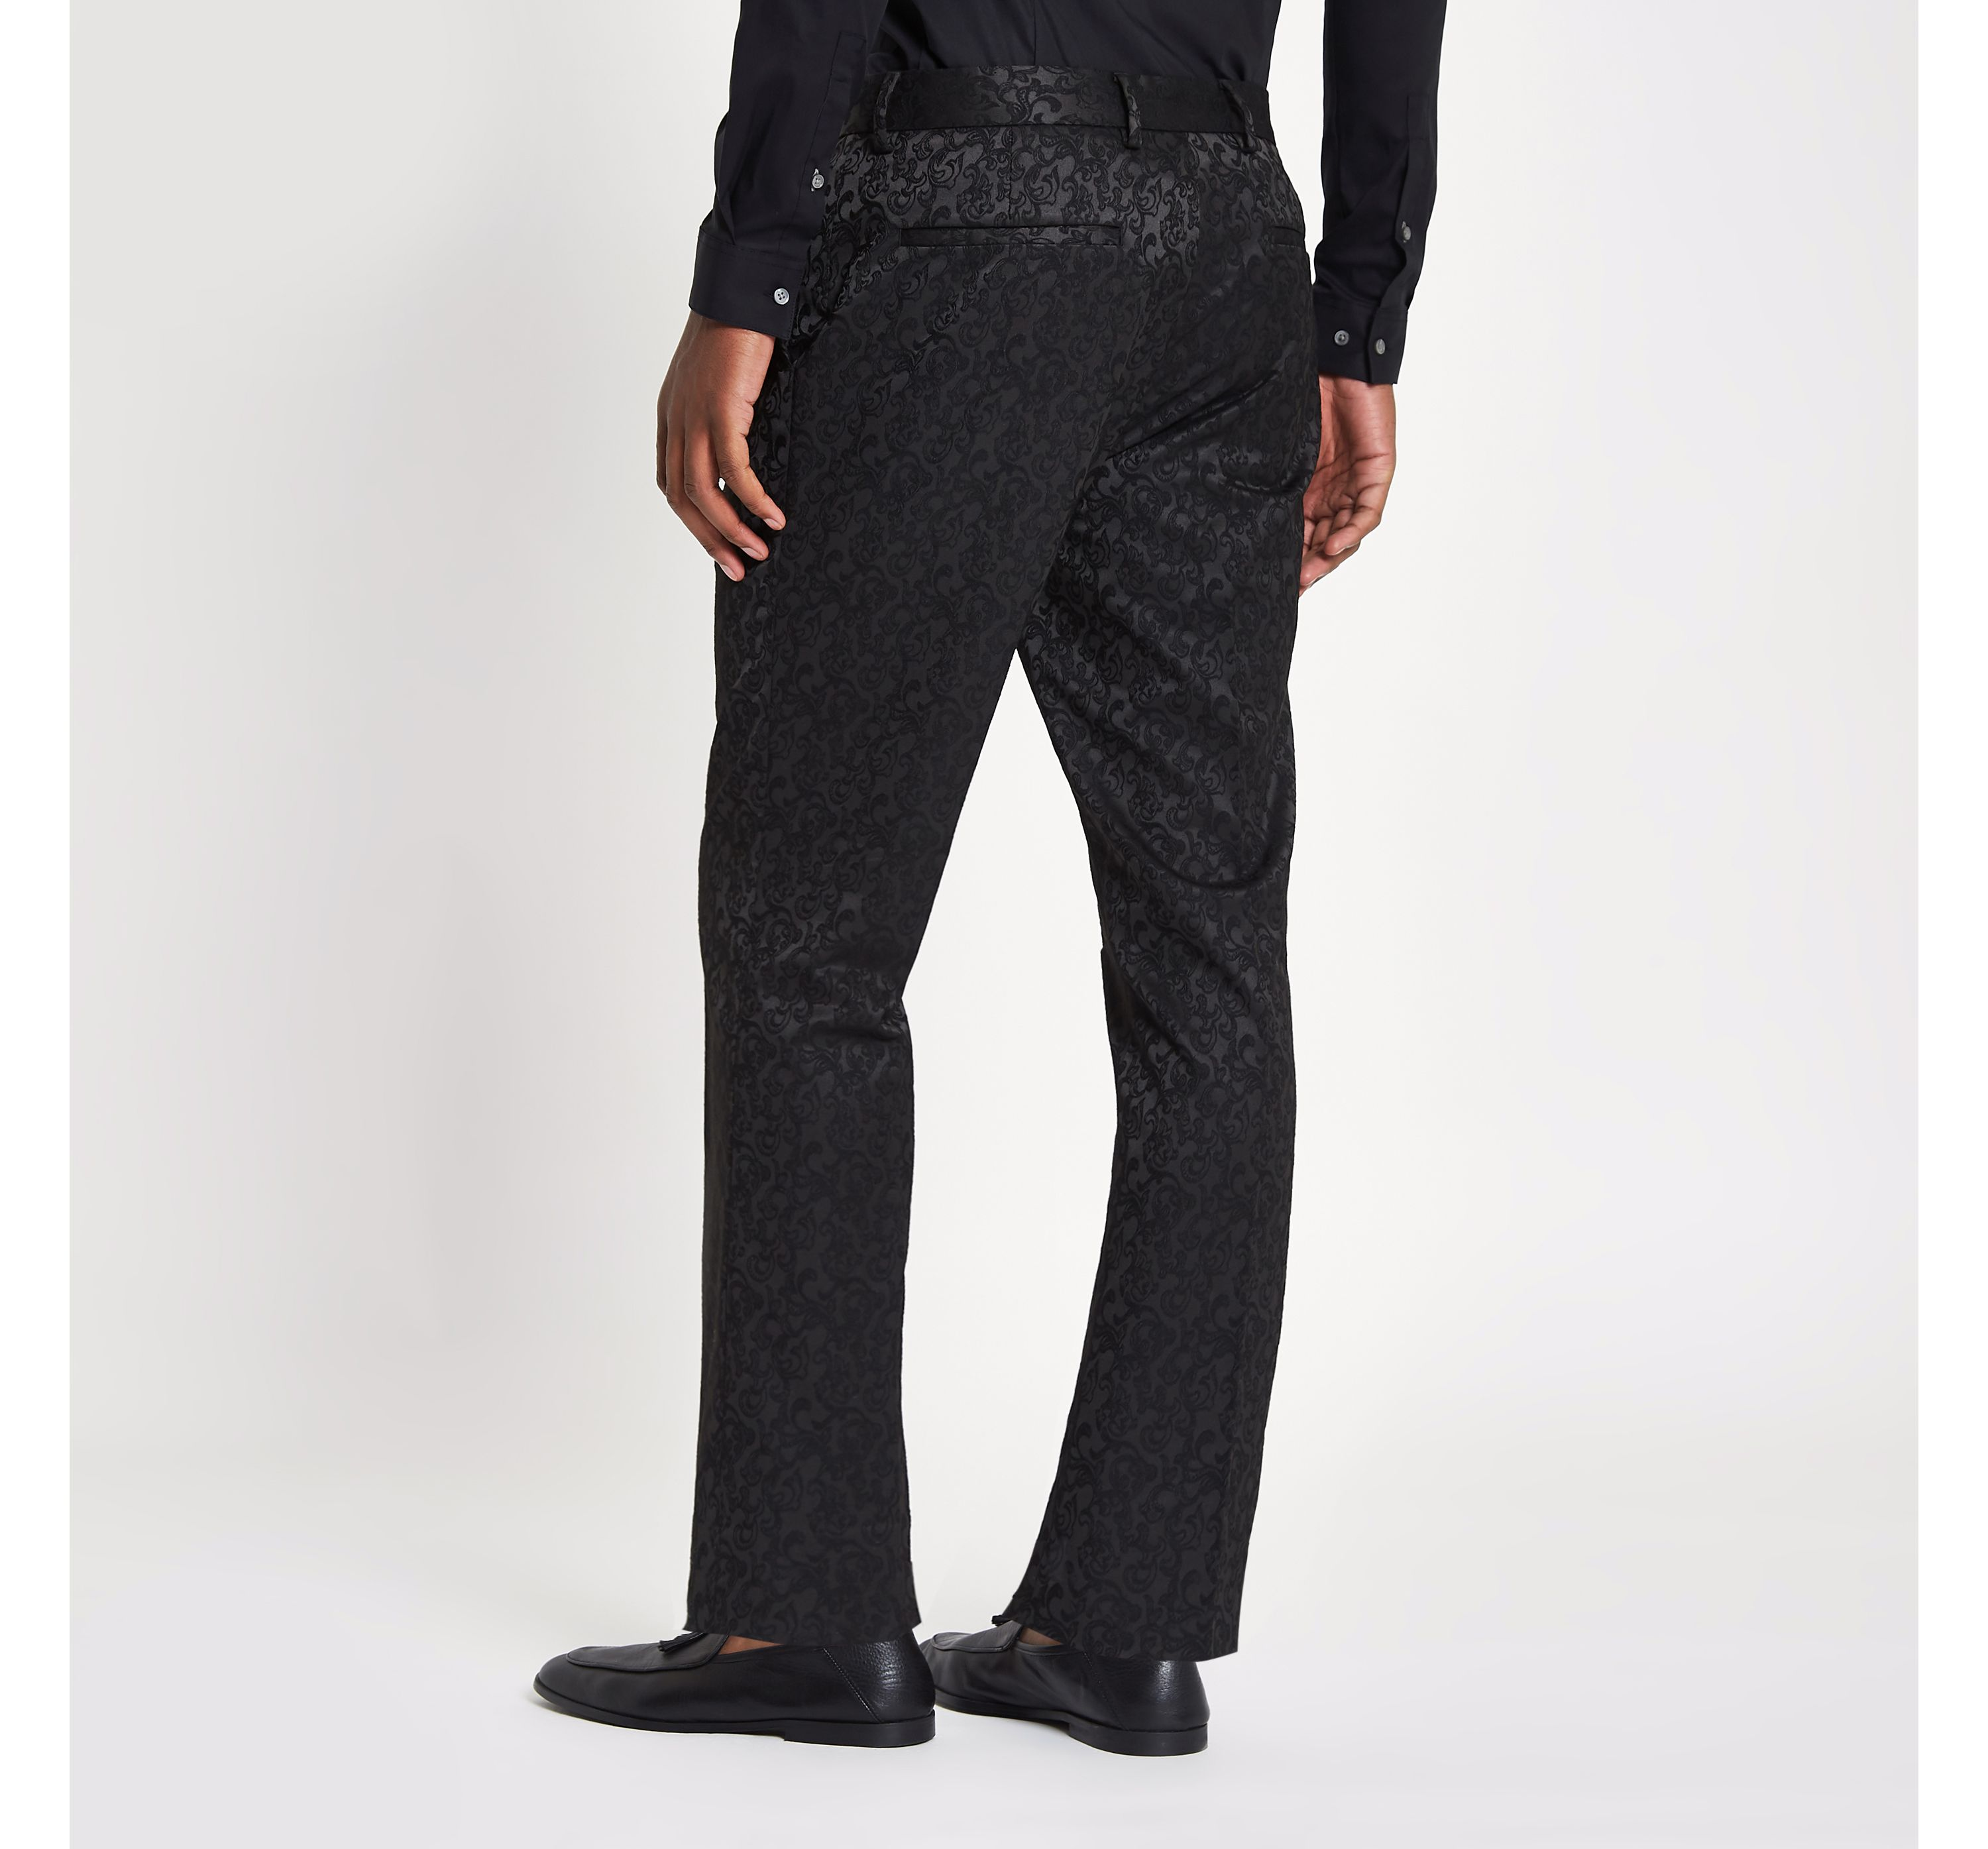 River Island Mens Black jacquard stretch skinny smart trousers